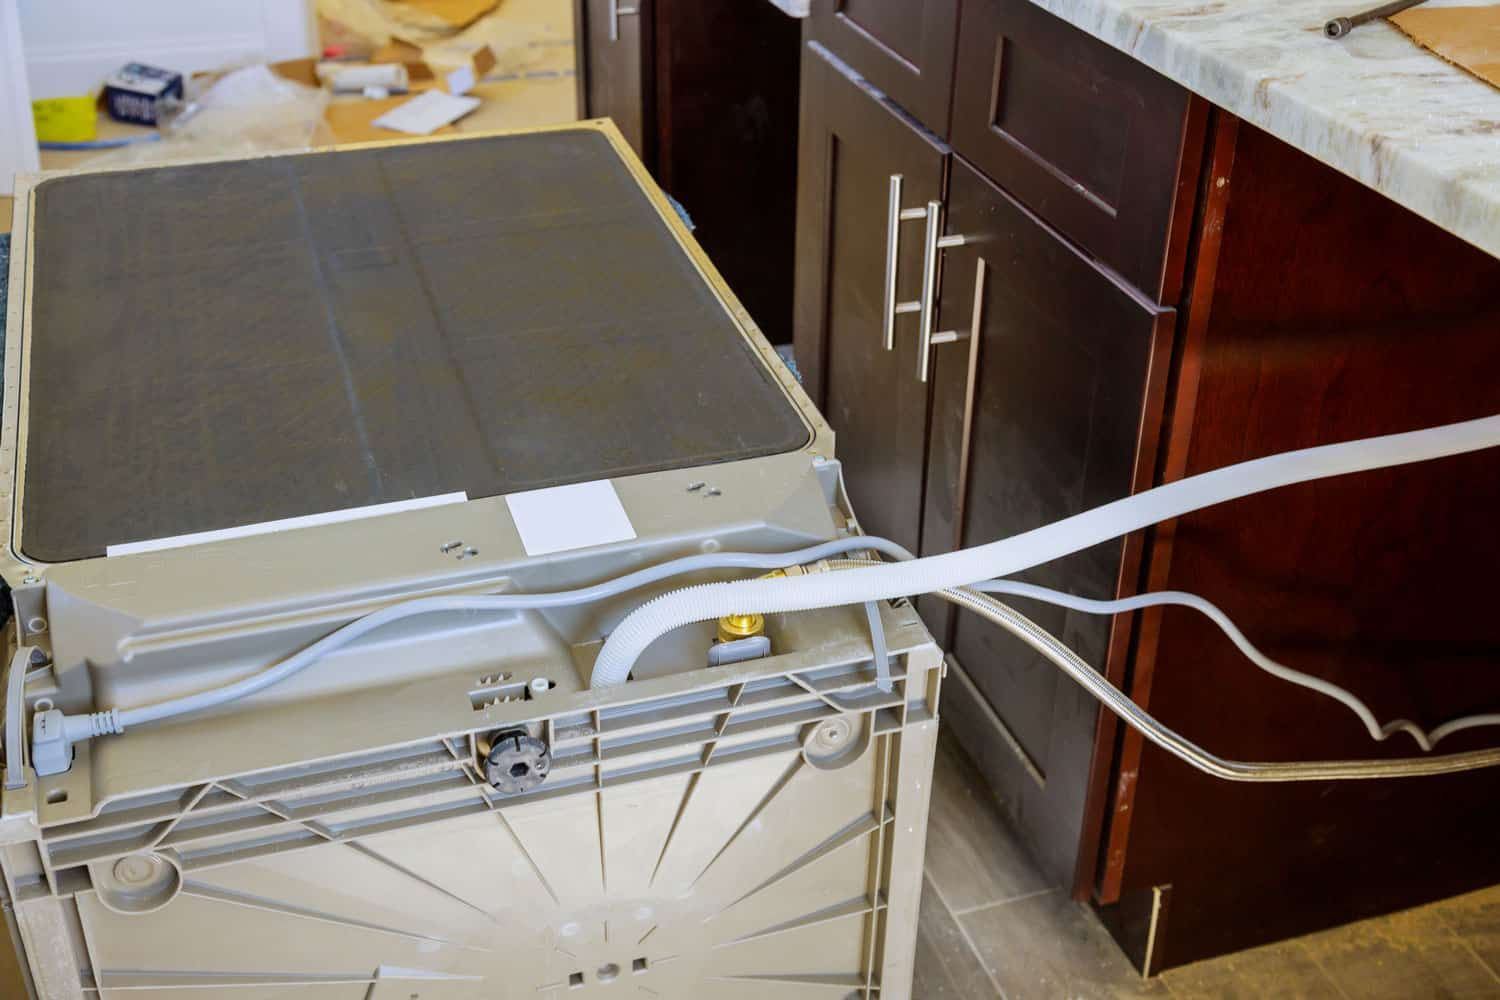 Installation hoses for dishwasher machine domestic connection plumbing pipes in kitchen